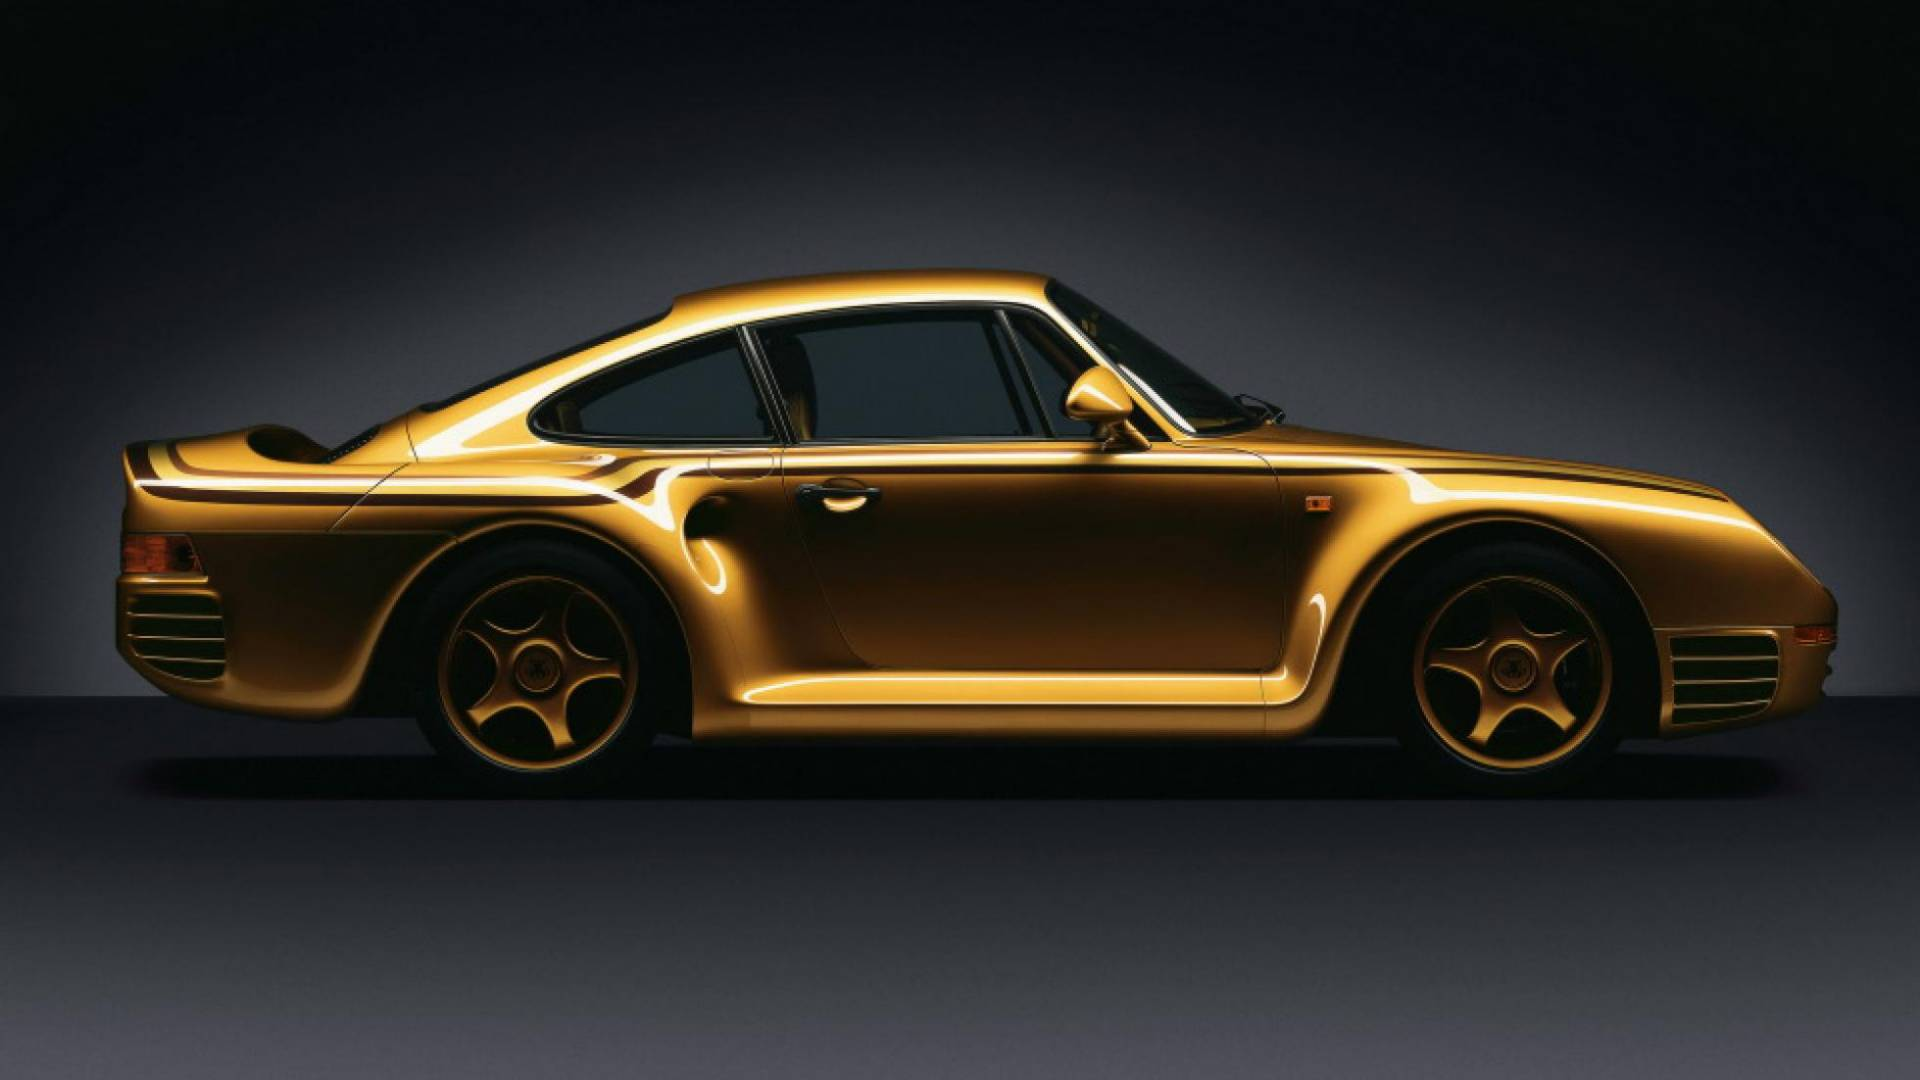 Is this gold Porsche 959 saved, ruined, cursed, or blessed? thumbnail